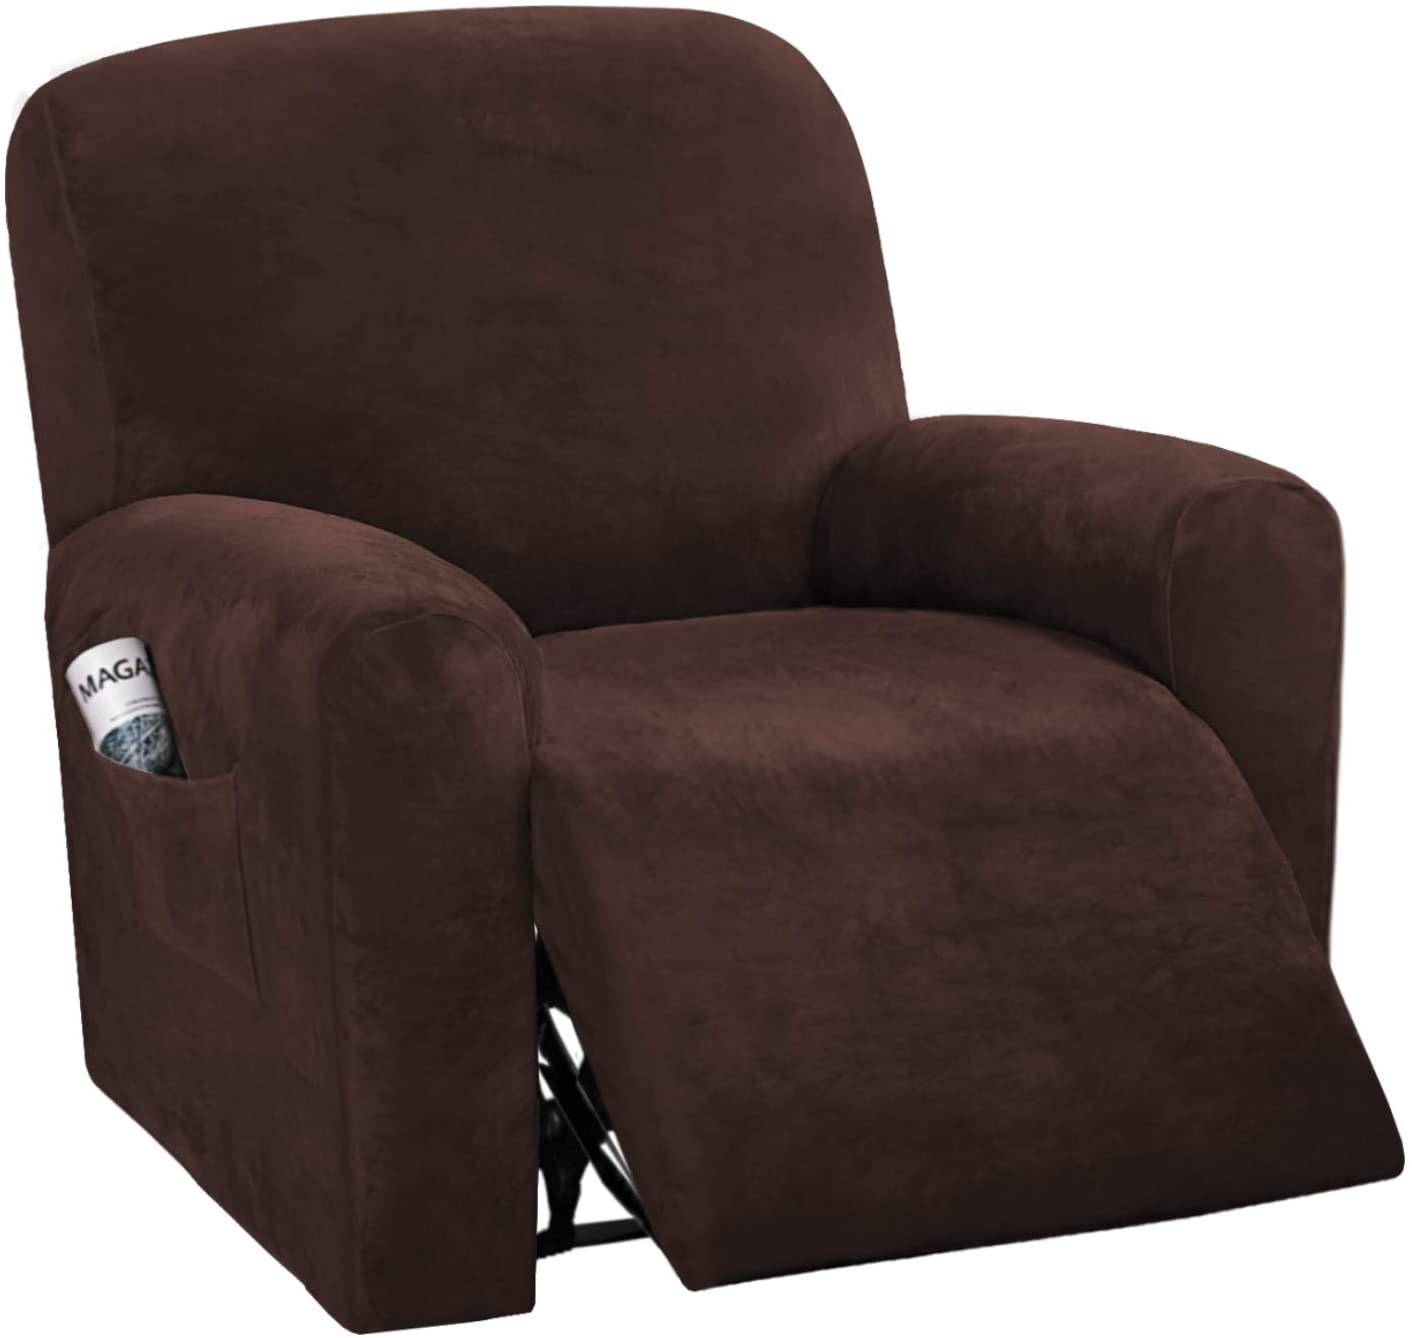 H.VERSAILTEX 4-Pieces Recliner Chair Covers Velvet Stretch Reclining Couch Covers for 1 Cushion Sofa Slipcovers Furniture Covers Form Fit Customized Style Thick Soft Washable(Small, Brown)